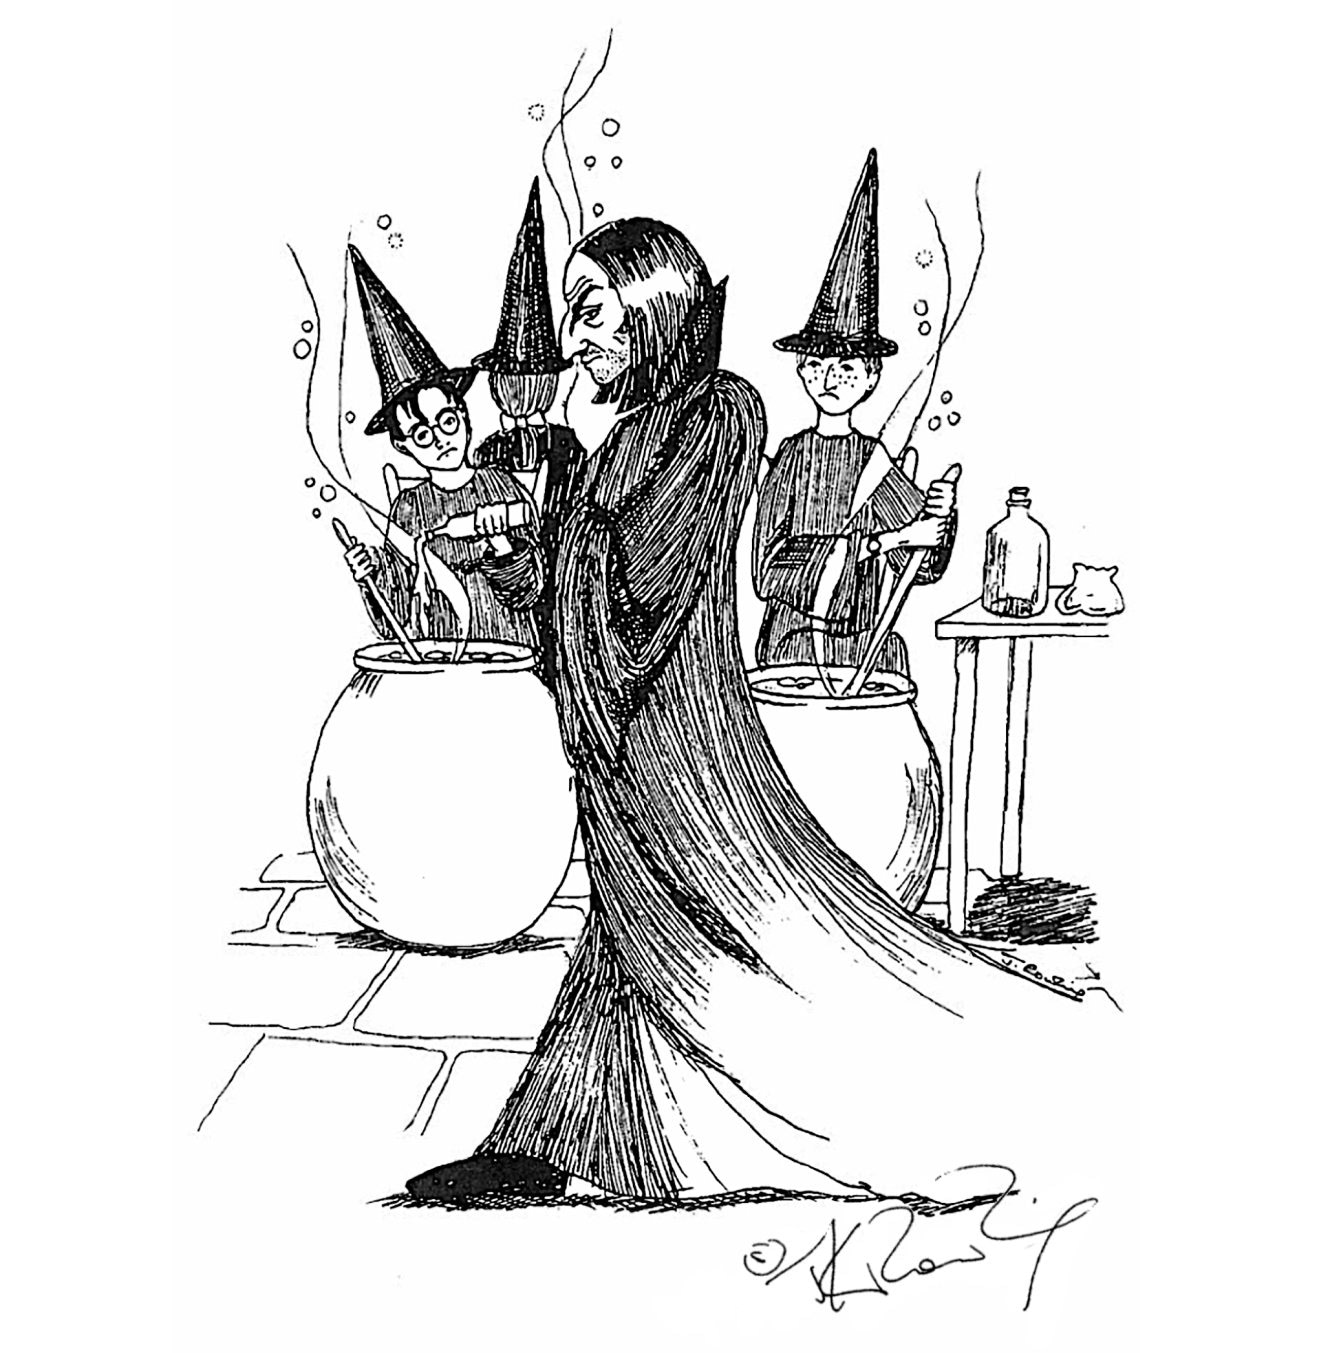 Snape in potions class (J.K. Rowling sketch)